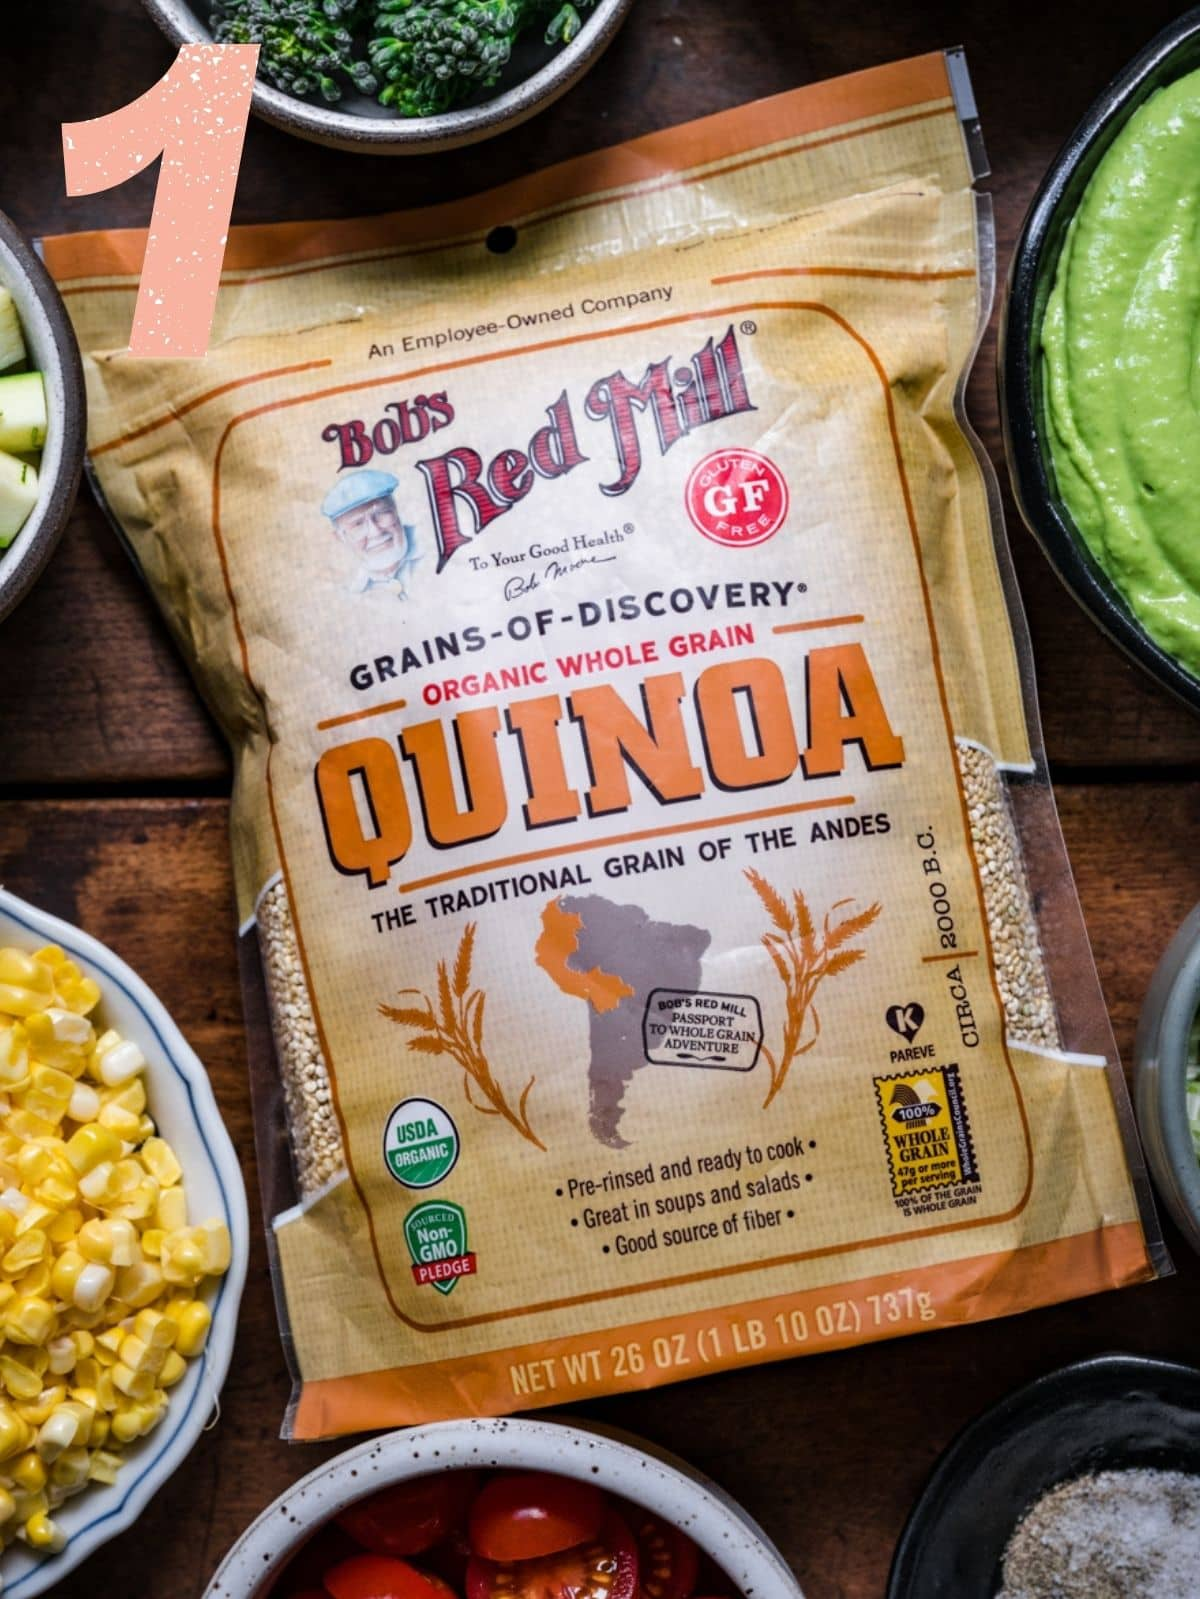 Close up of Bob's Red Mill Quinoa package.